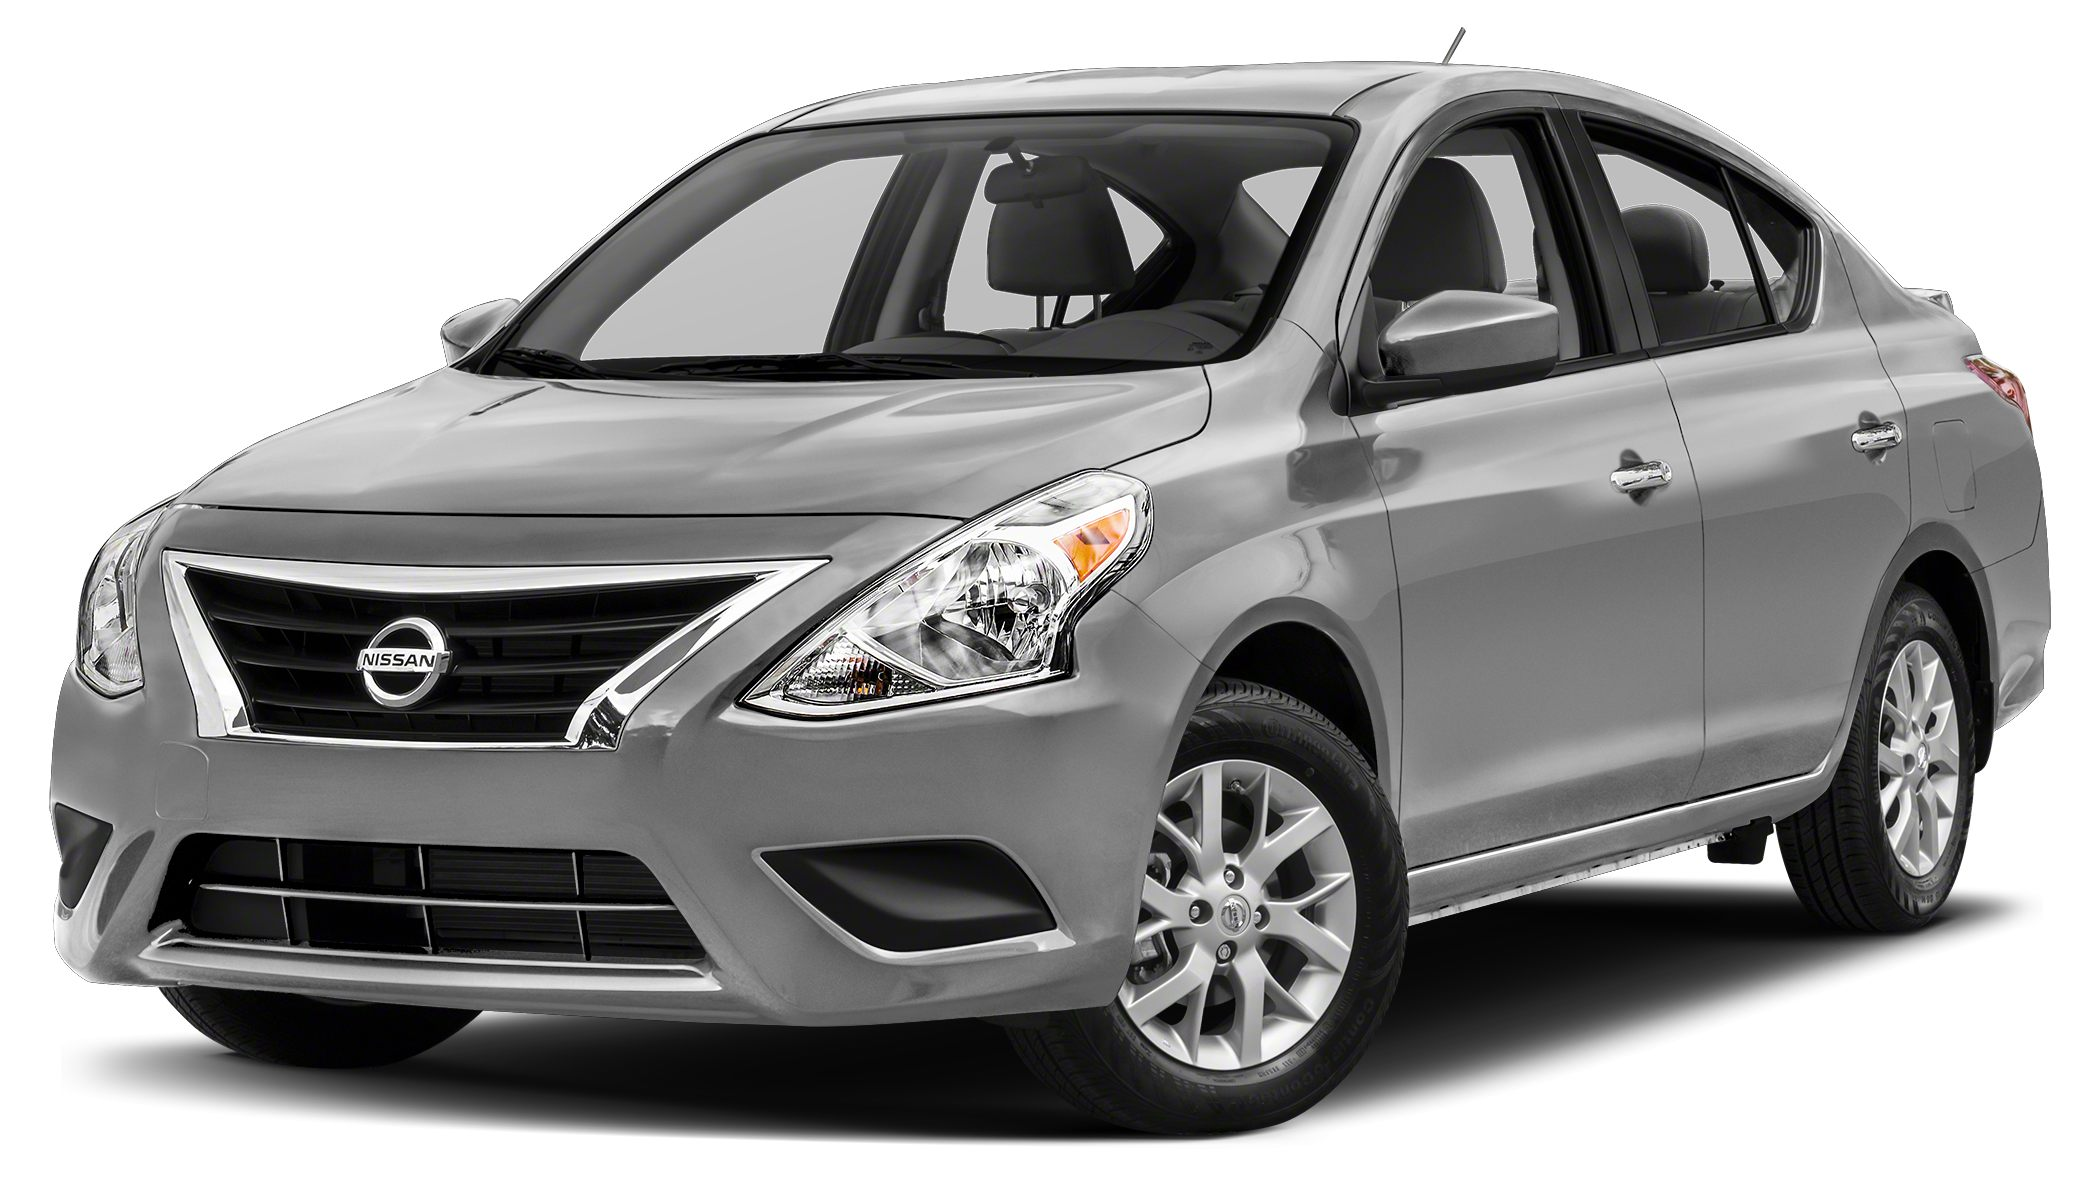 2017 Nissan Versa 16 S This 2017 Nissan Versa Sedan S will sell fast Priced to sell at 2196 be